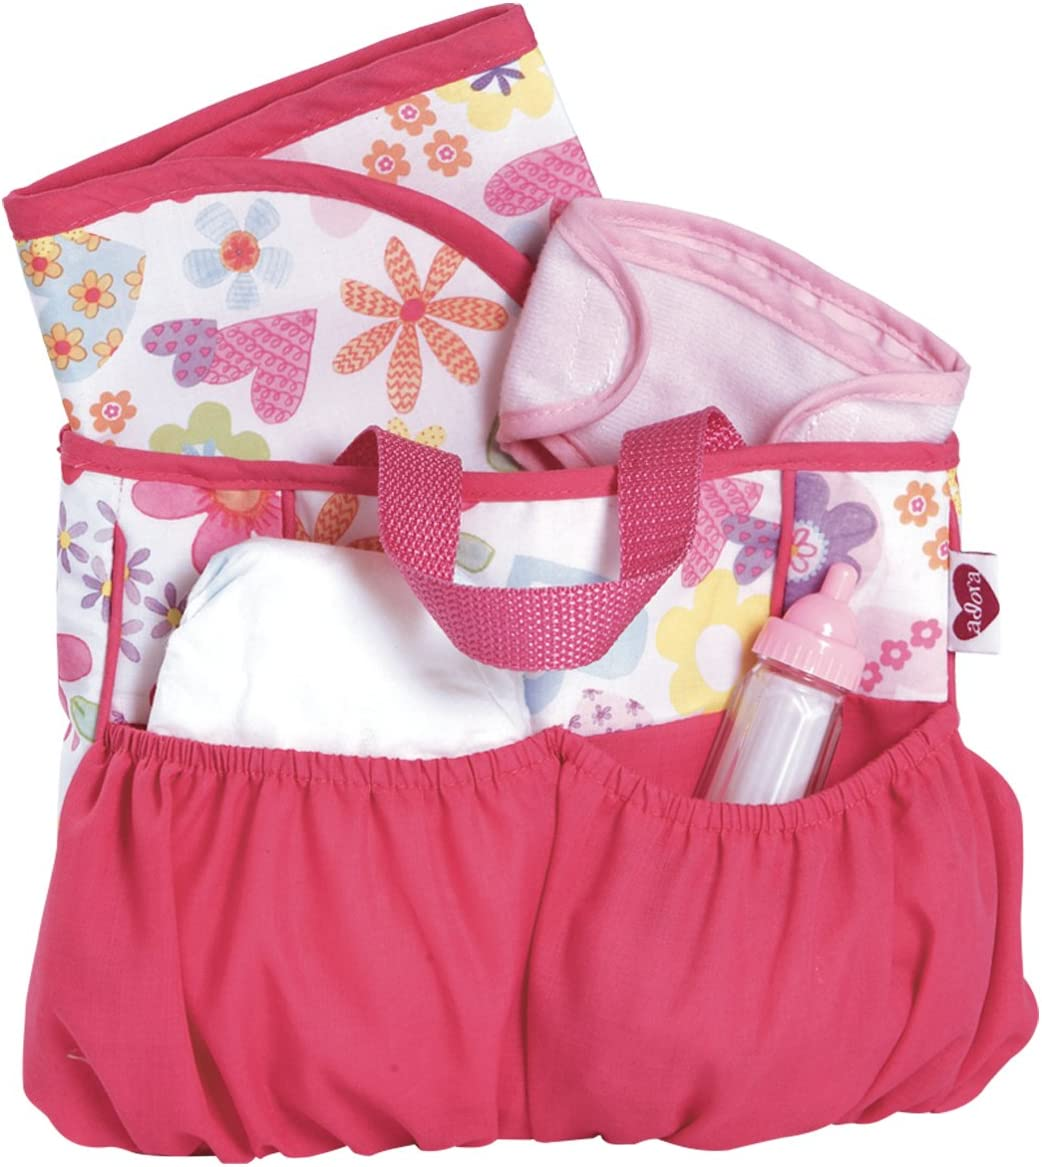 Adora 20603021 Baby Doll Diaper Bag Accessories with 5Piece Changing Set